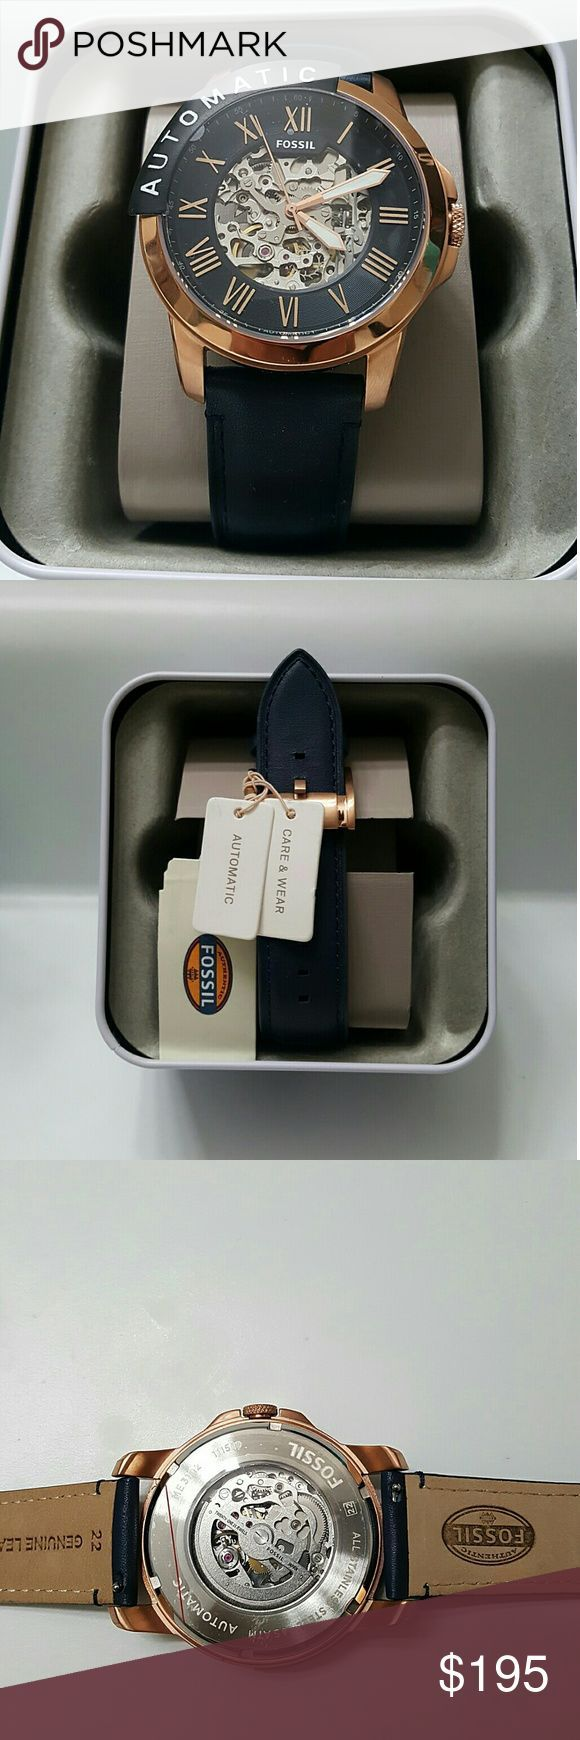 NWT fossil automatic rose and blue watch NWT fossil Men's Automatic Rose Gold SKELETON leather Strap Watch?    Firm PRICE?  $195.00  . AUTHENTIC WATCH?  . AUTHENTIC BOX?  . AUTHENTIC MANUAL?    SHIPPING?  PLEASE ALLOW FEW BUSINESS DAYS FOR ME TO SHIPPED IT OFF.I HAVE TO GET IT FROM MY WAREHOUSE.    THANK YOU FOR YOUR UNDERSTANDING. fossil Accessories Watches